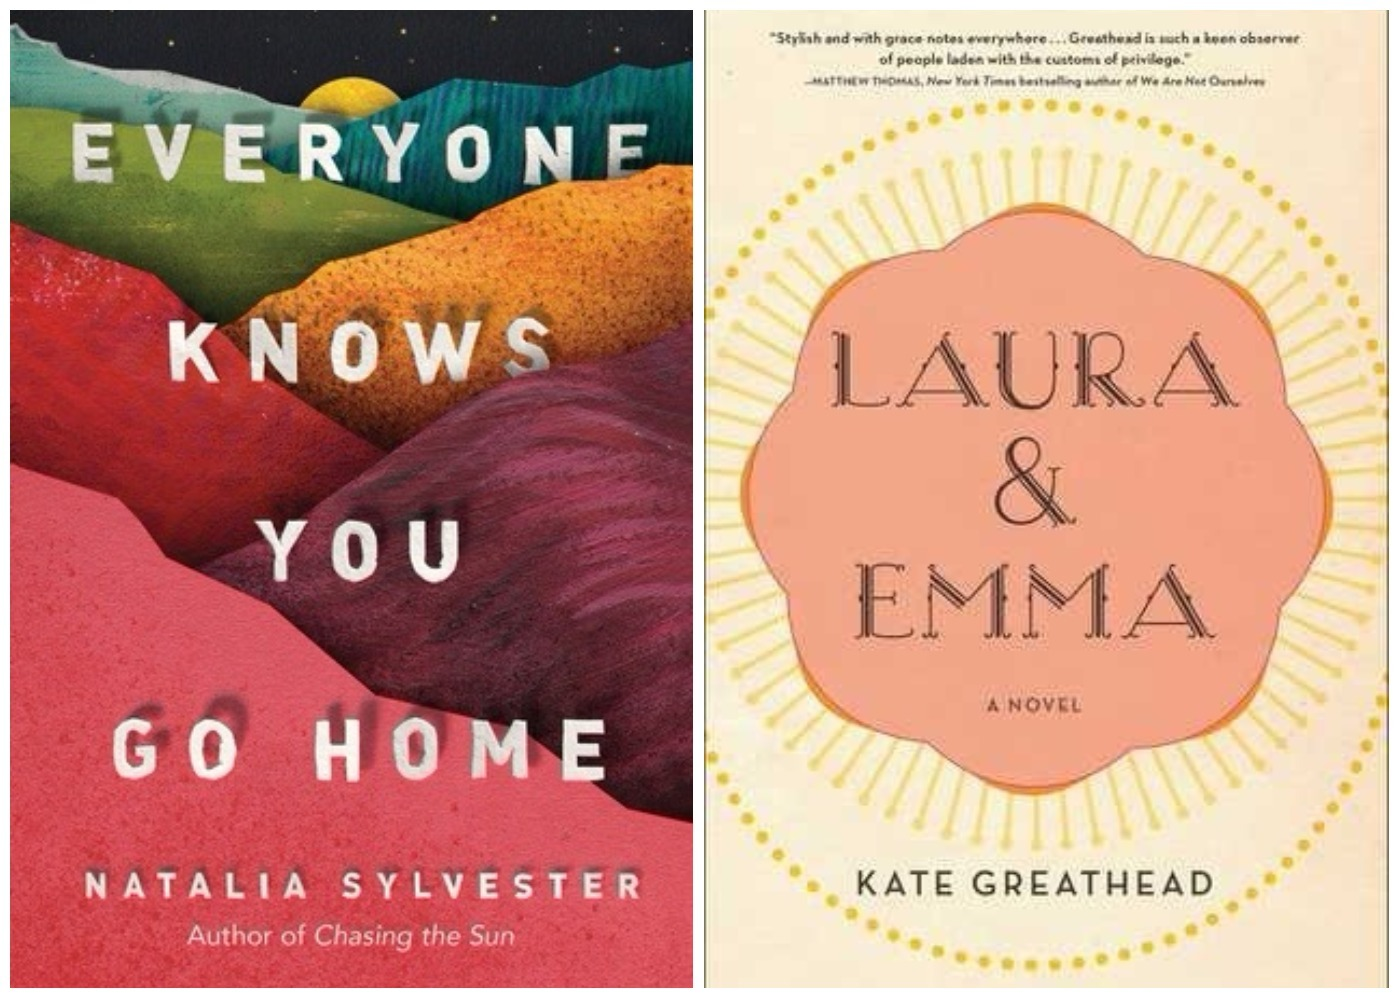 Picture of Everyone Knows You Go Home and Laura & Emma Books